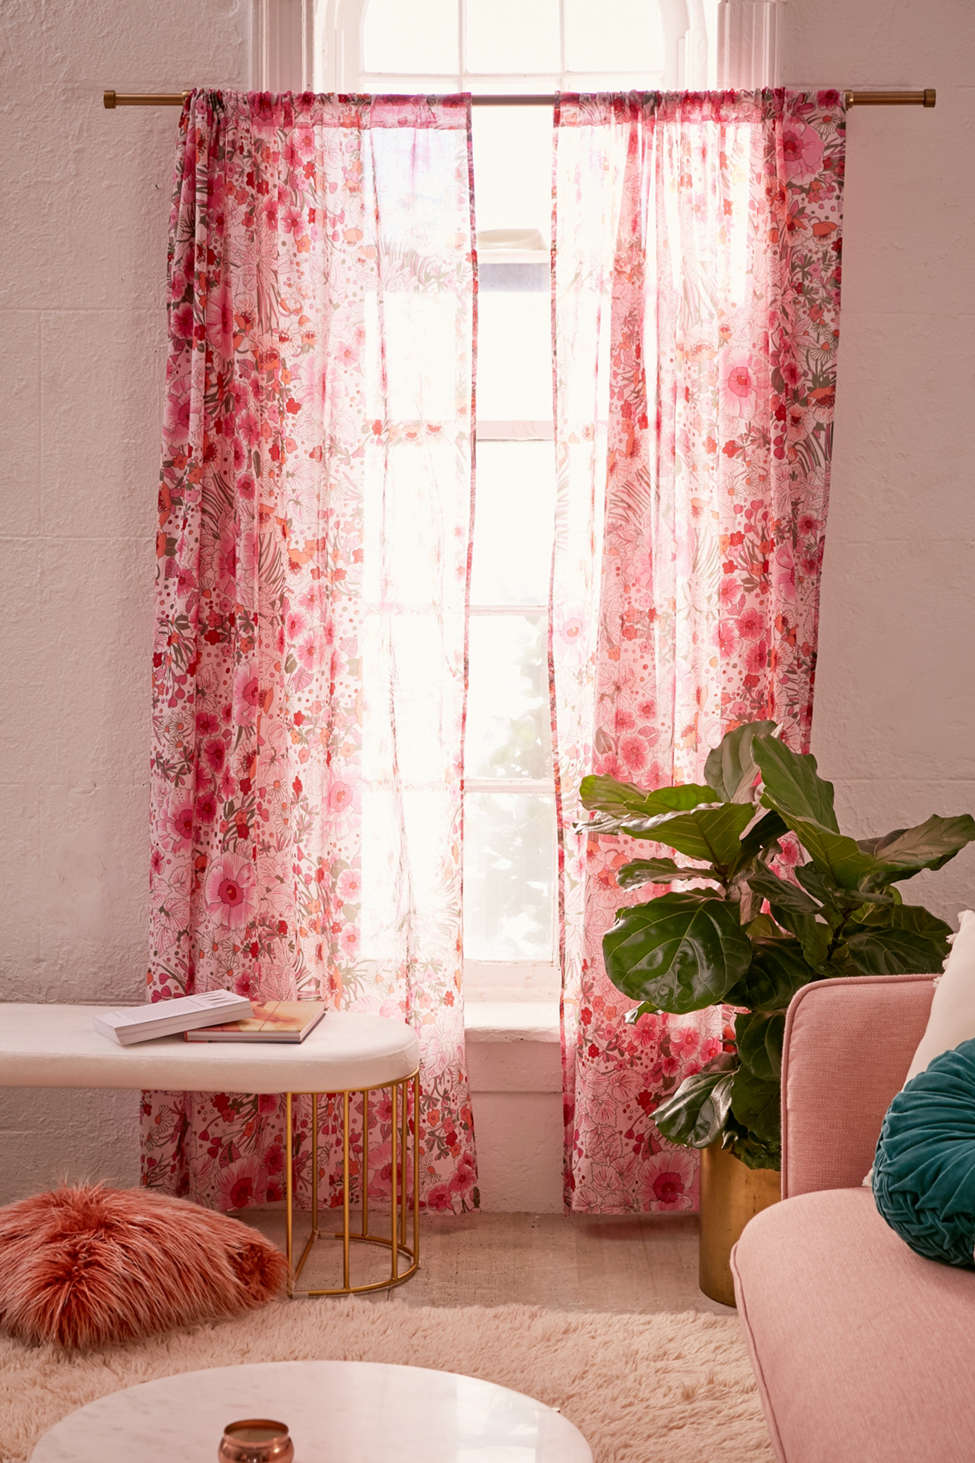 Slide View: 1: Lovise Floral Window Curtain